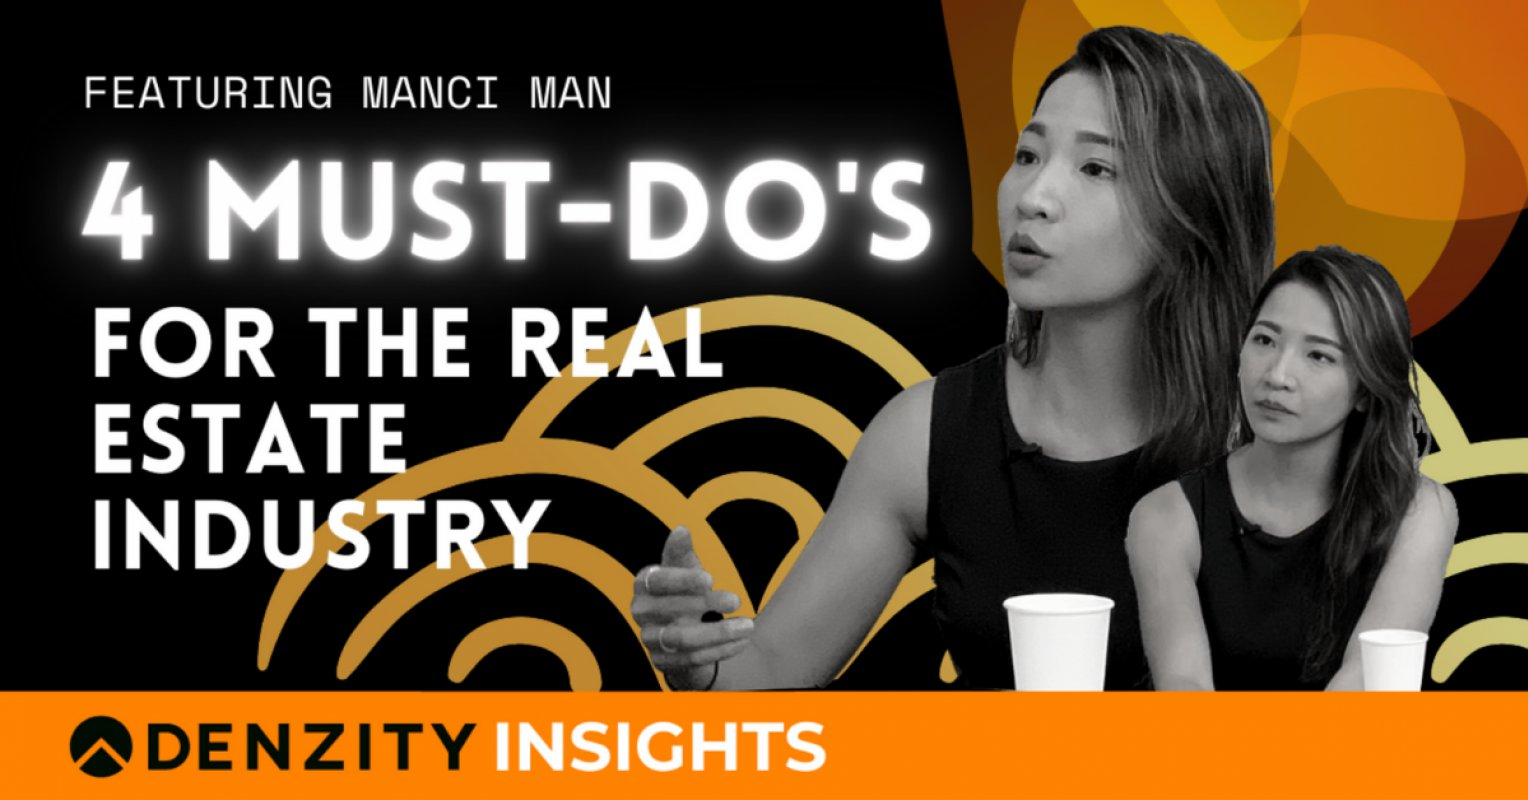 Manci Man's 4 Must-Do's for the Real Estate Industry